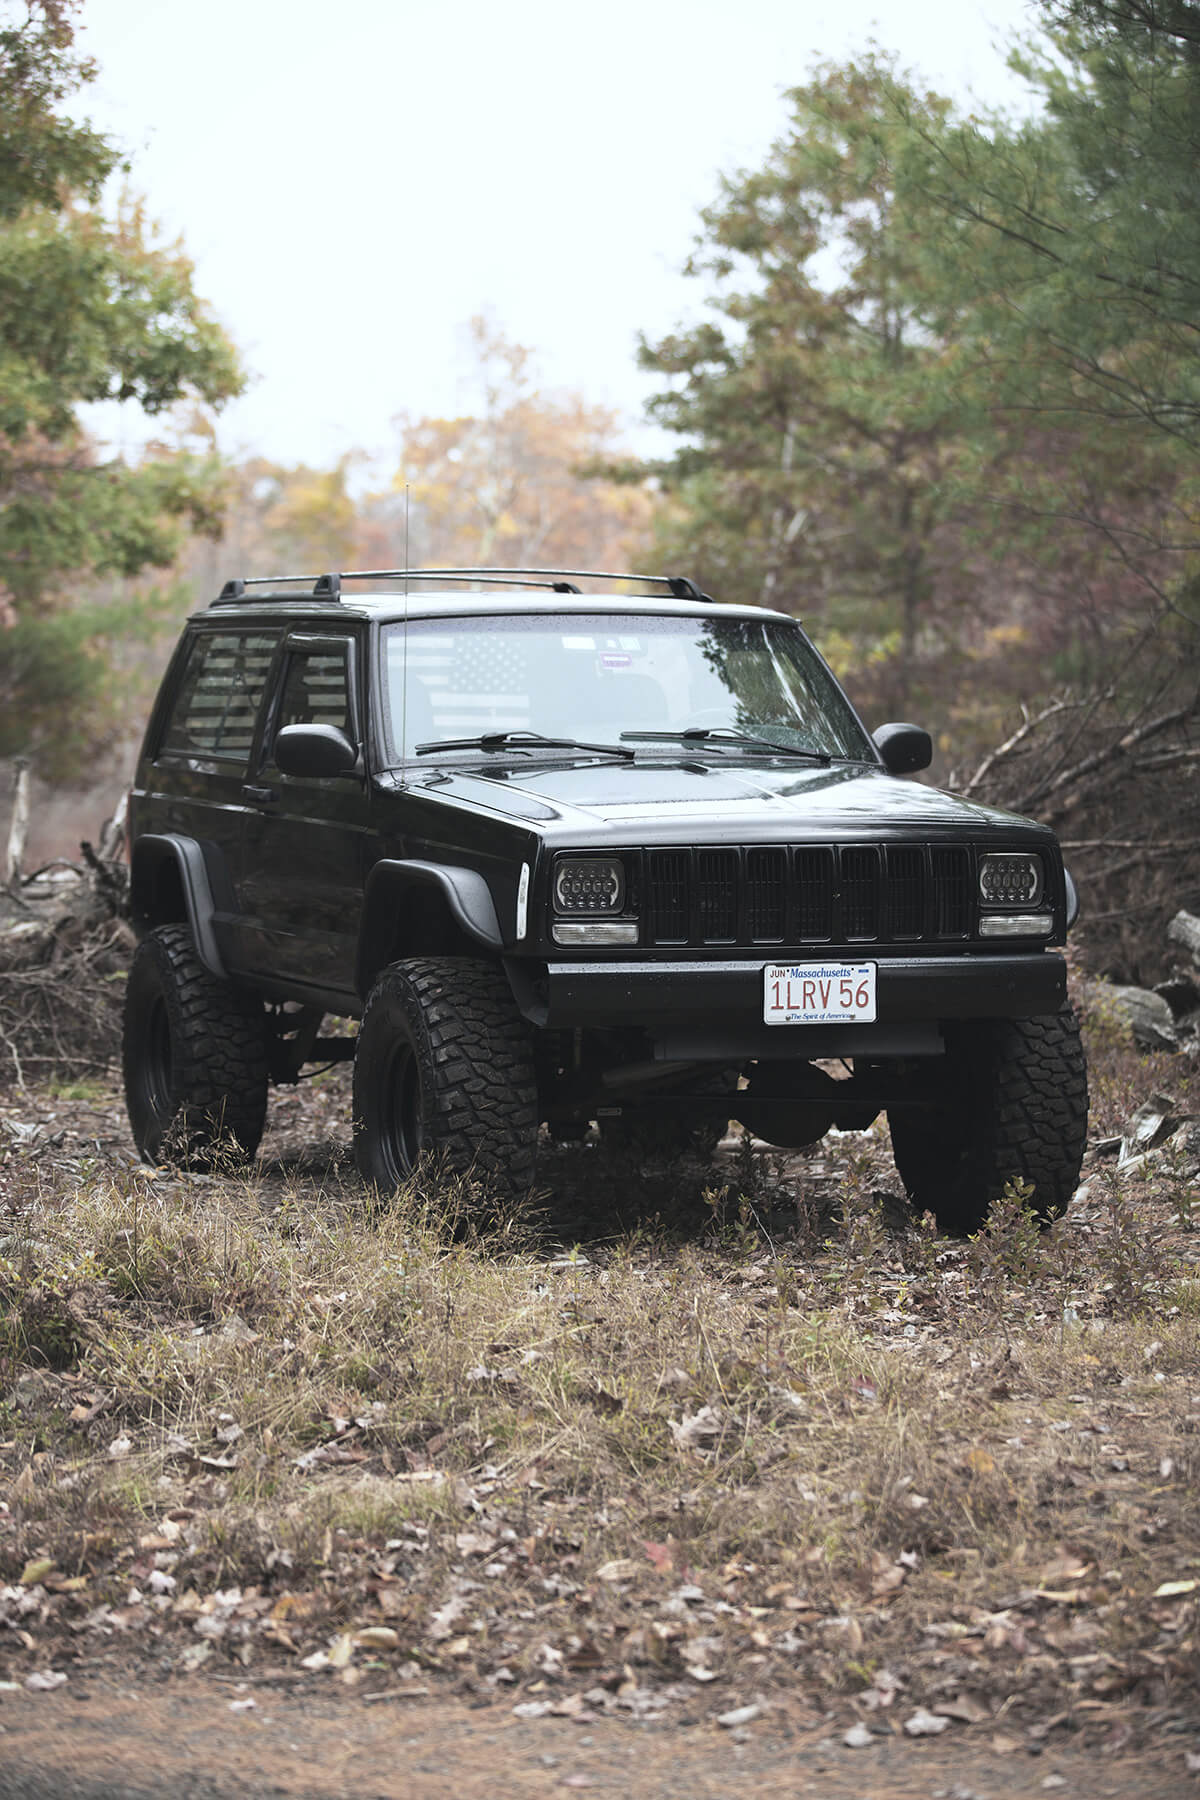 Lifted Jeep Cherokee XJ with Bushwacker flat flares